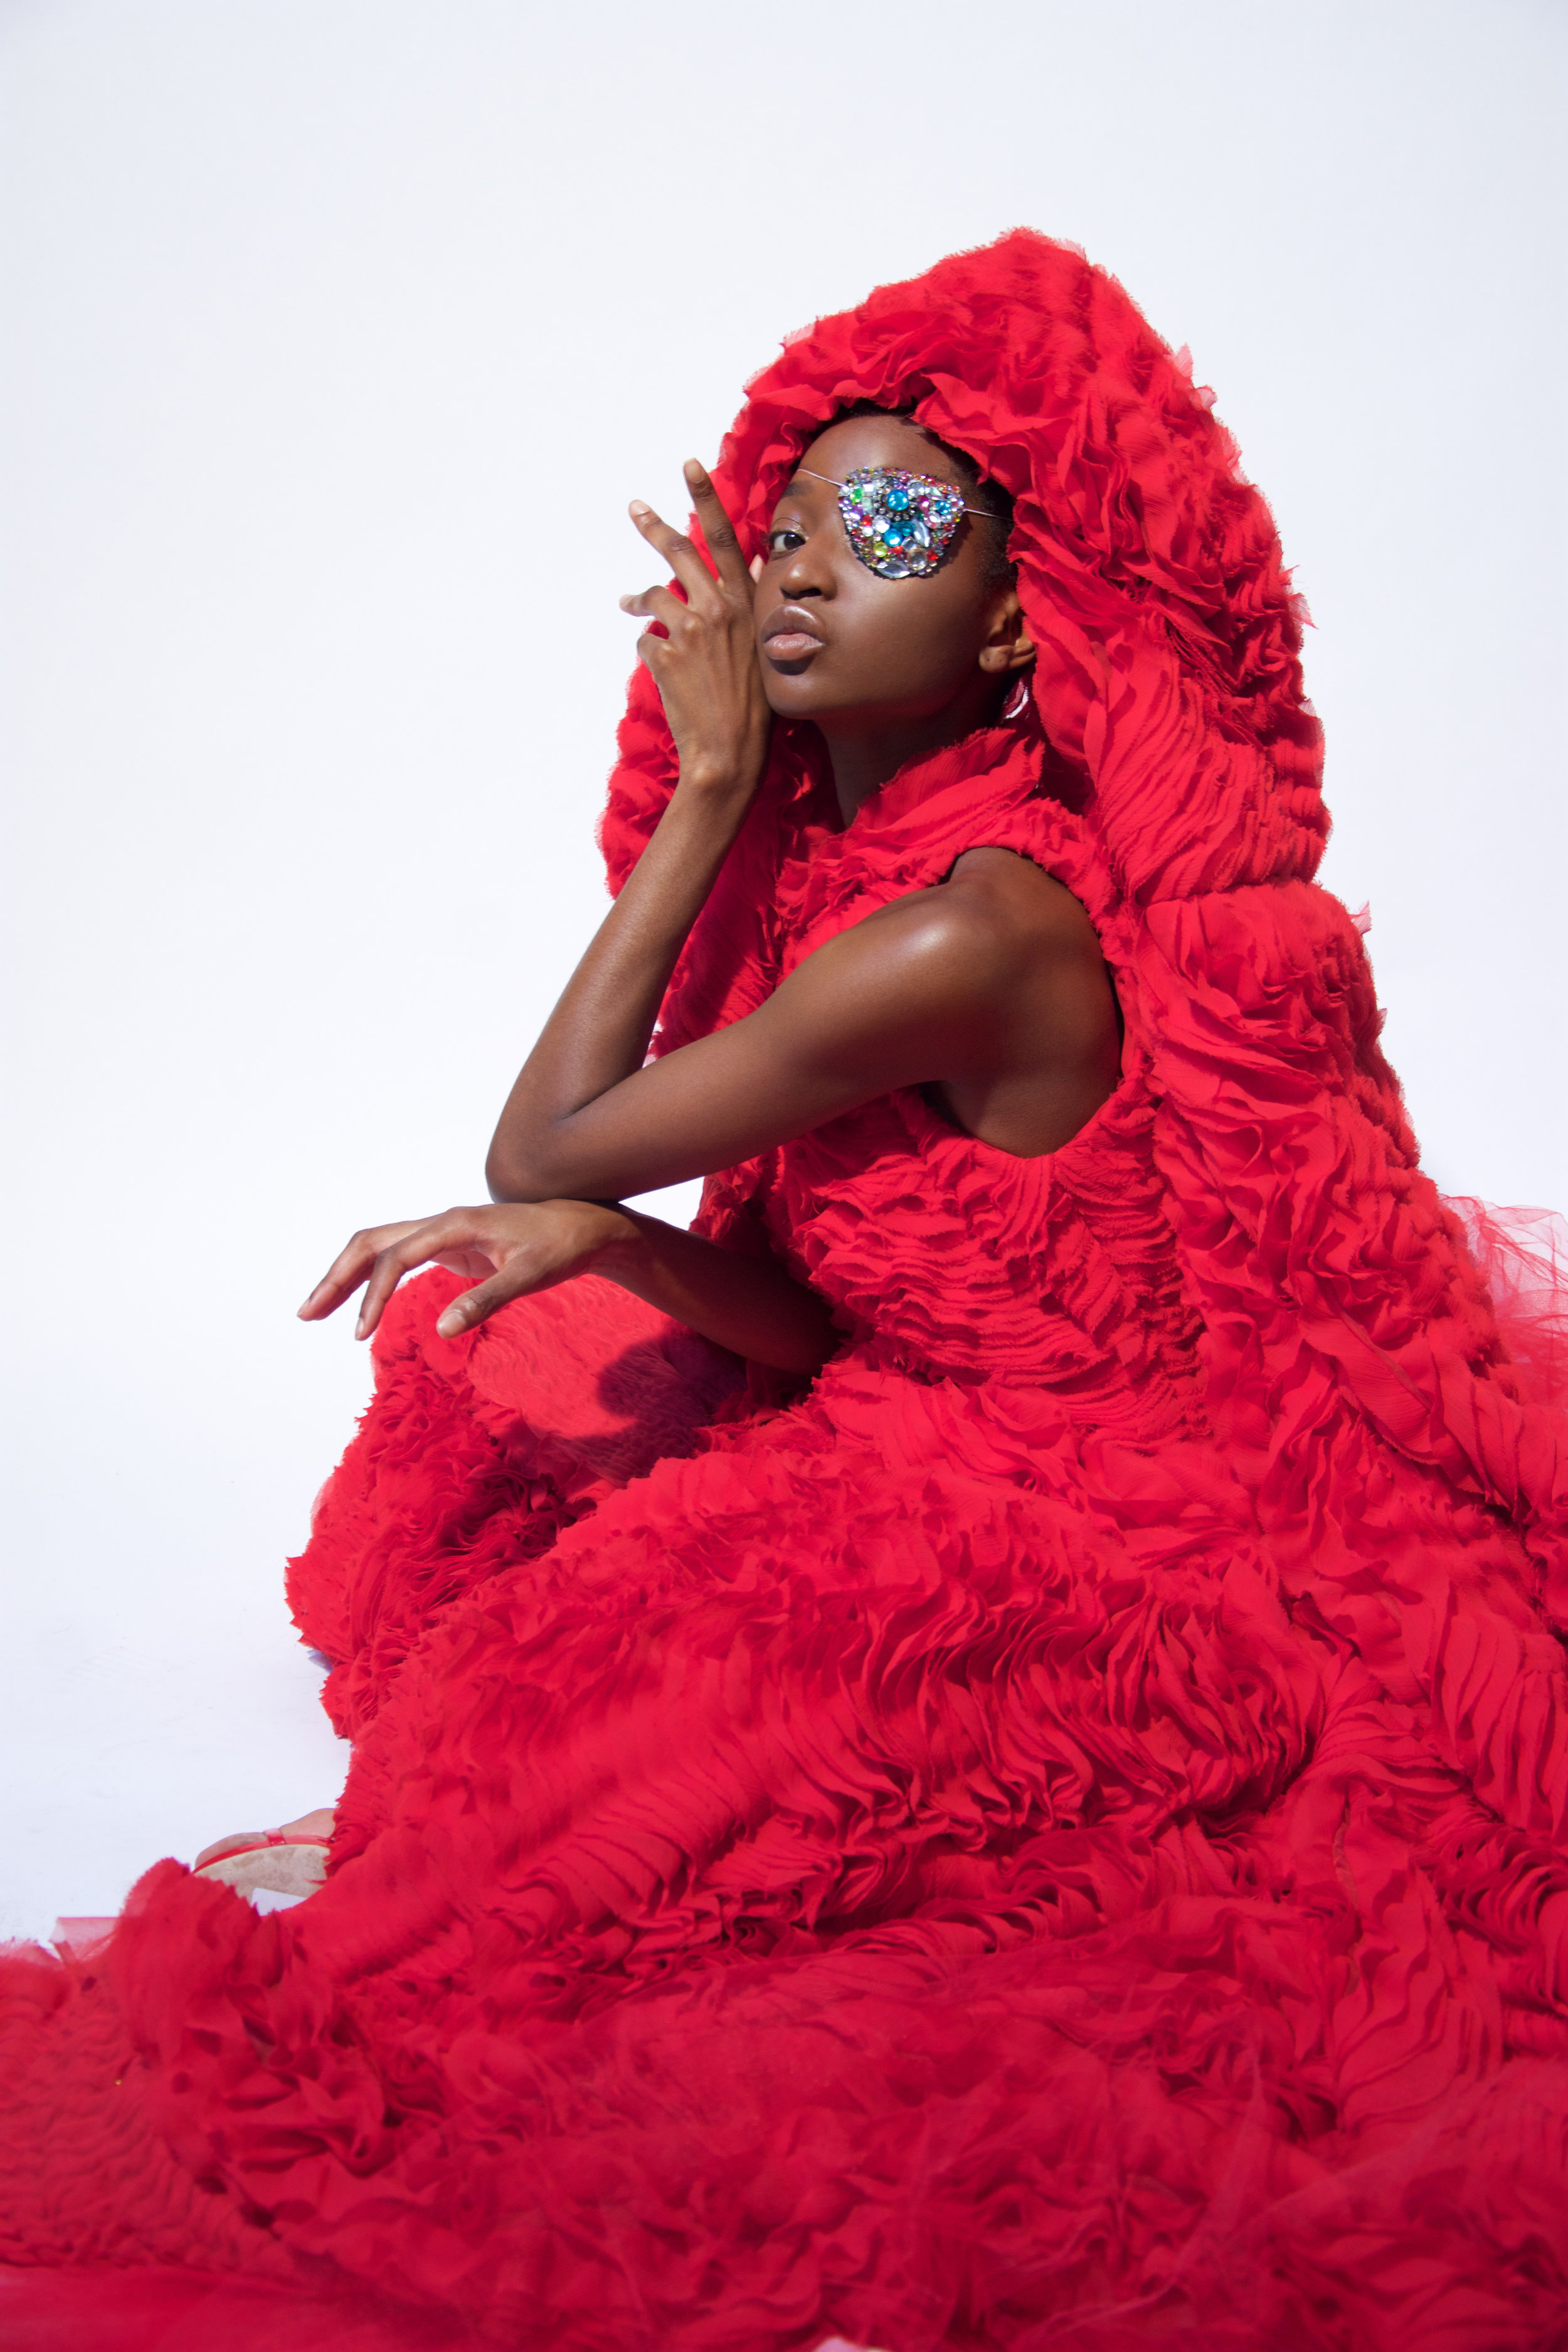 Keli is wearing Haute Couture red rouches Top and Gown by Filippo La Terza mask eye by Helion private collection hearings by Accessorize shoes by Giuseppe ZanottiNathaly is wearing couture dress by Luisa Beccaria shoes by Giuseppe Zanotti